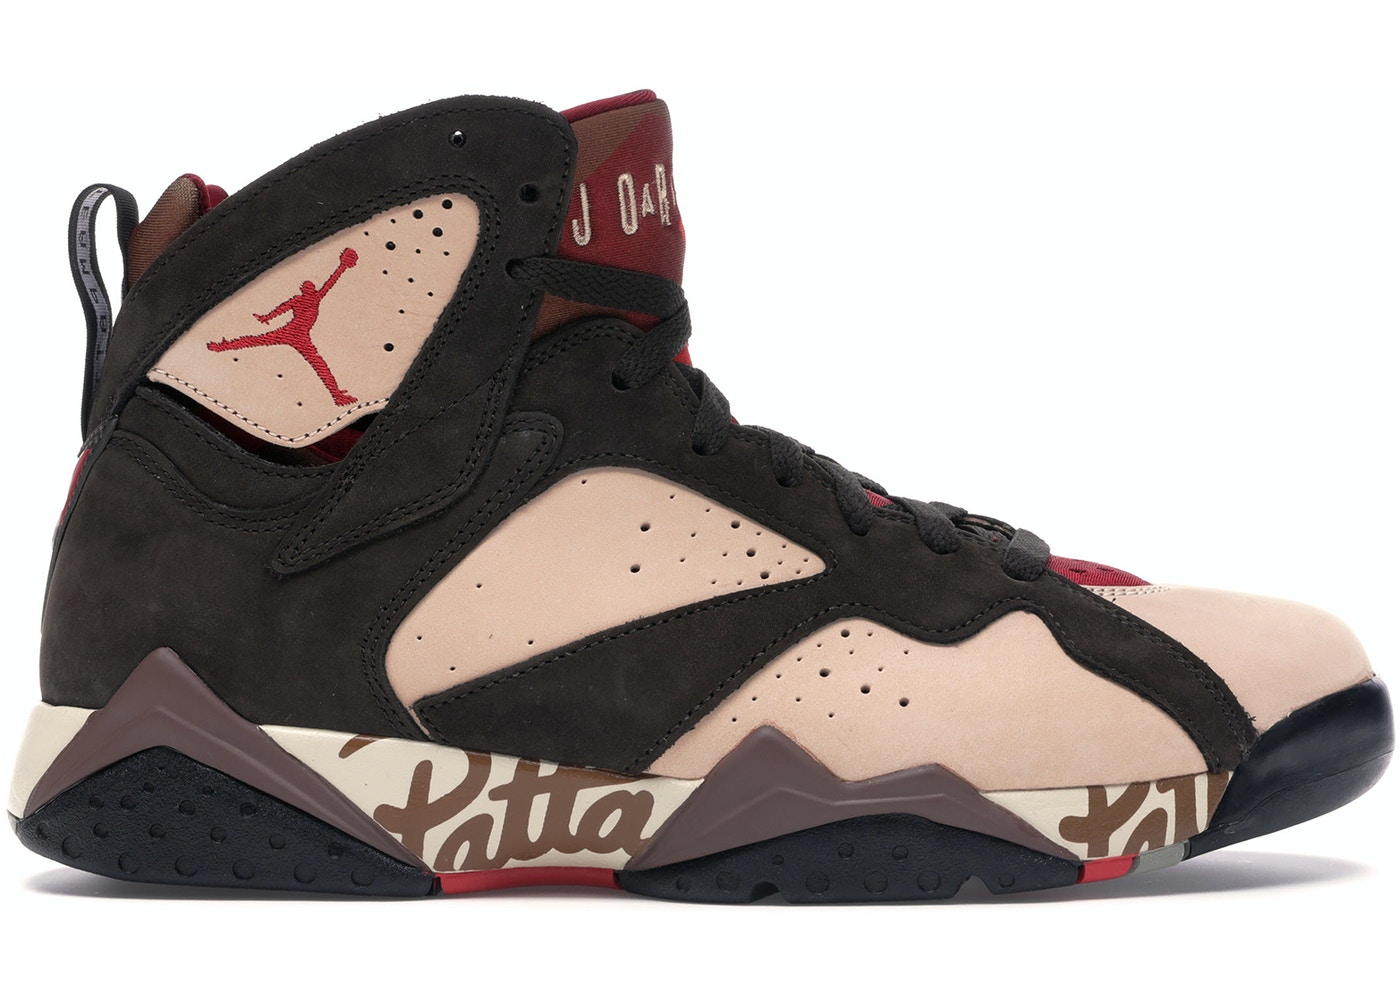 0d71516b Jordan 7 Retro Patta Shimmer - AT3375-200